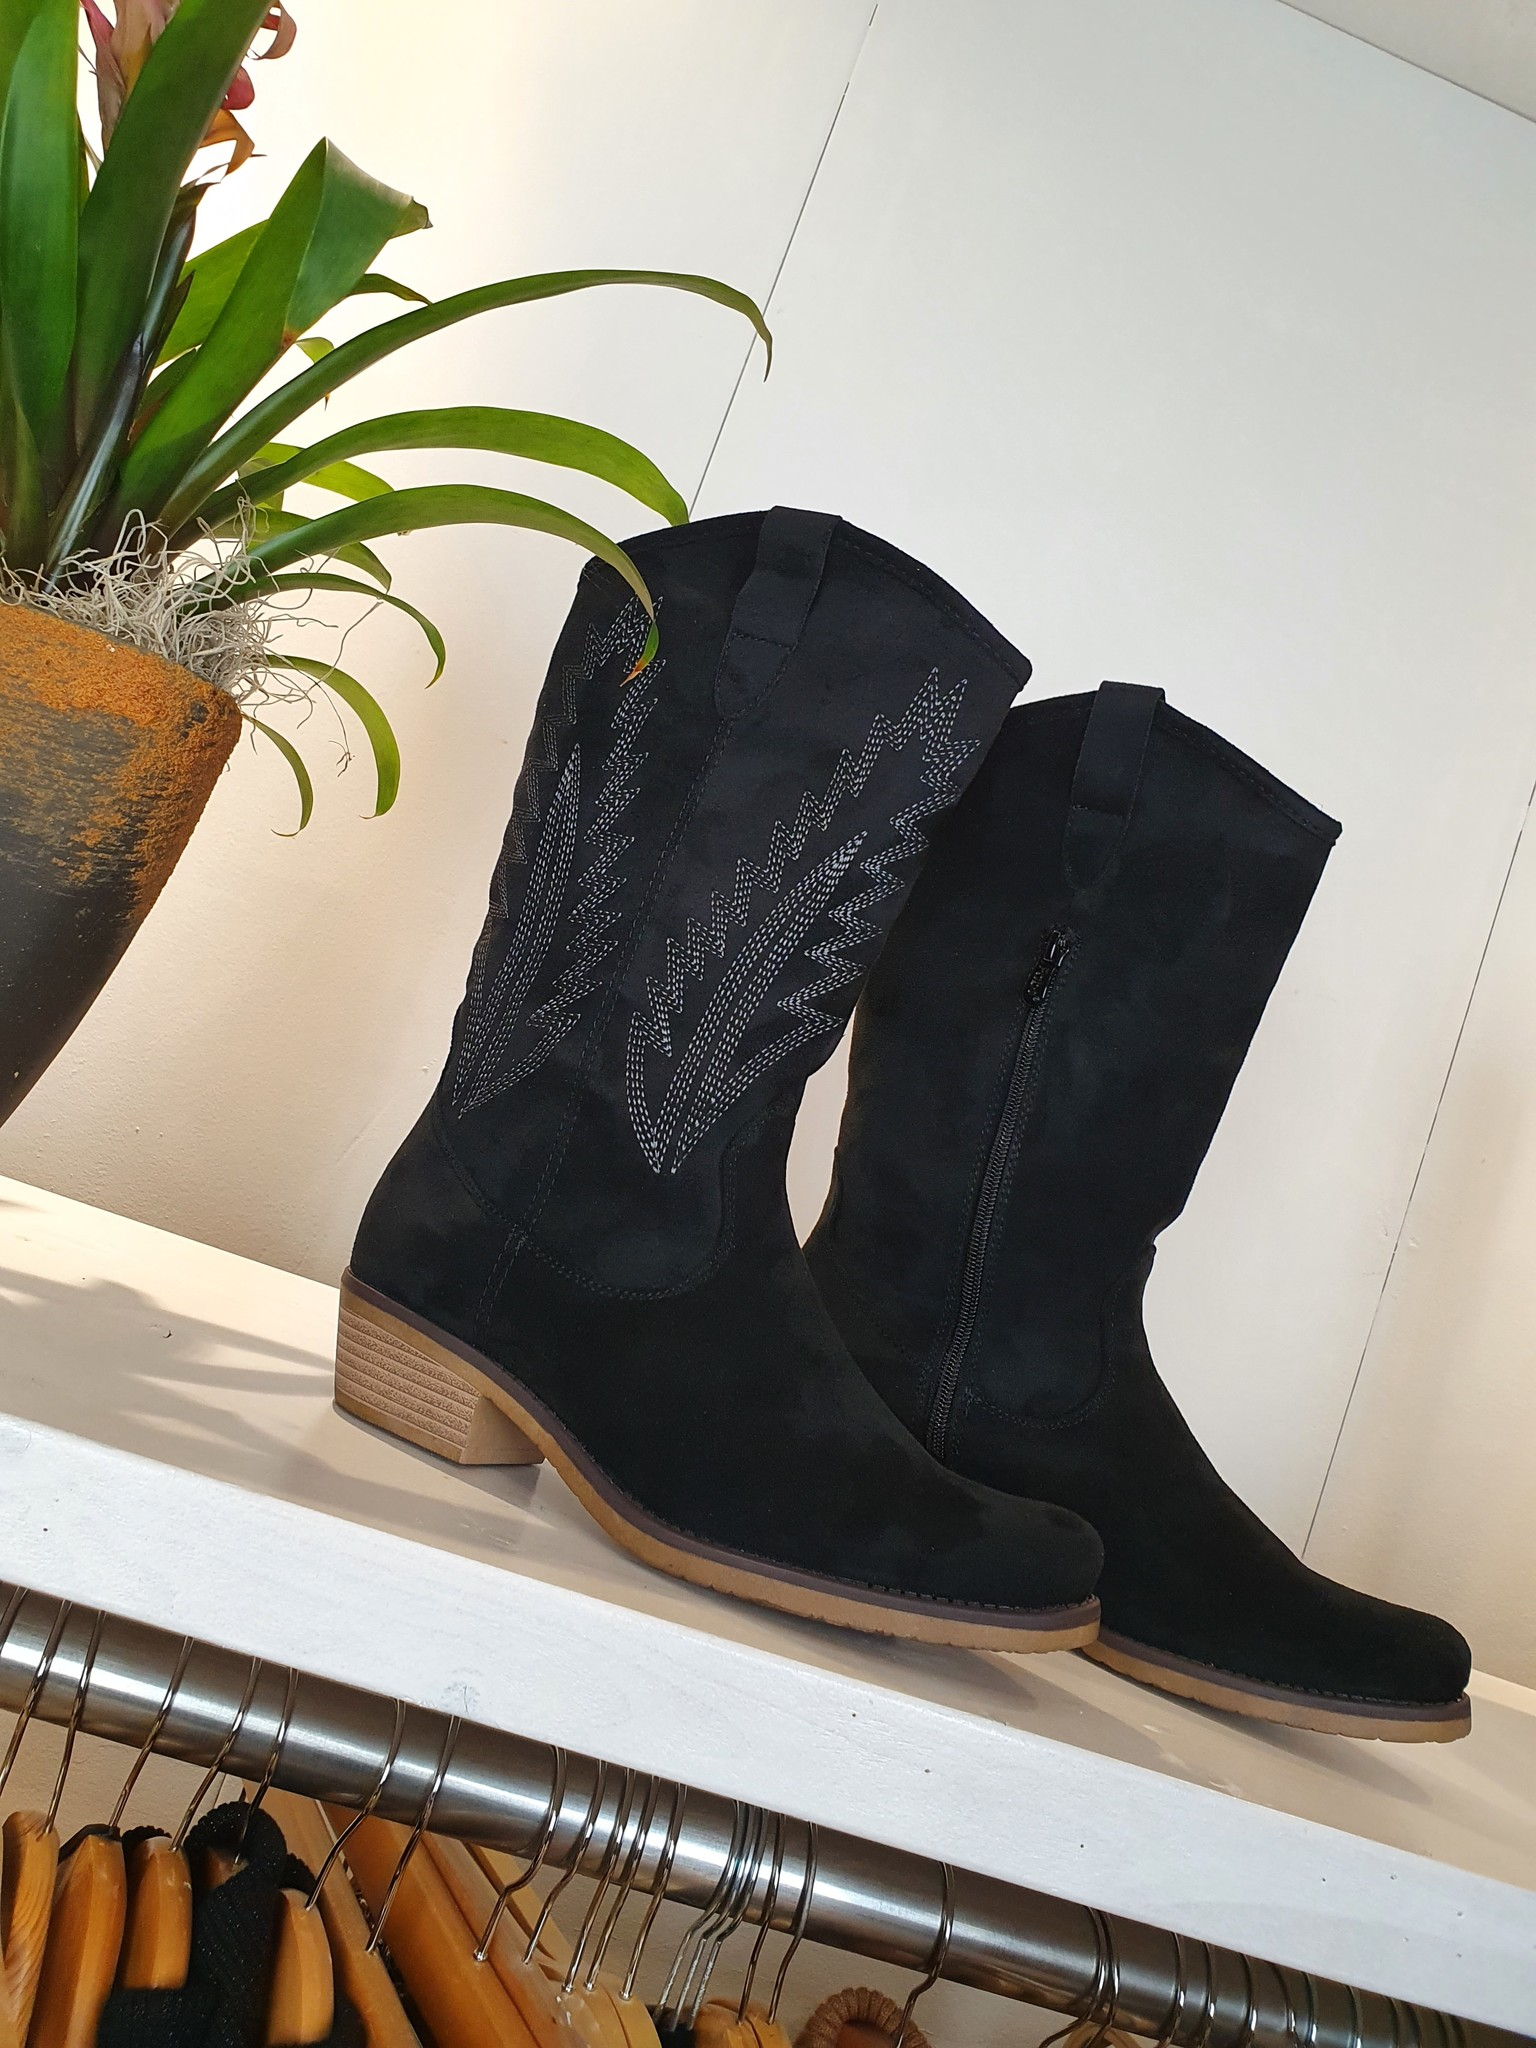 Fabulous Fabs Fabs western boots